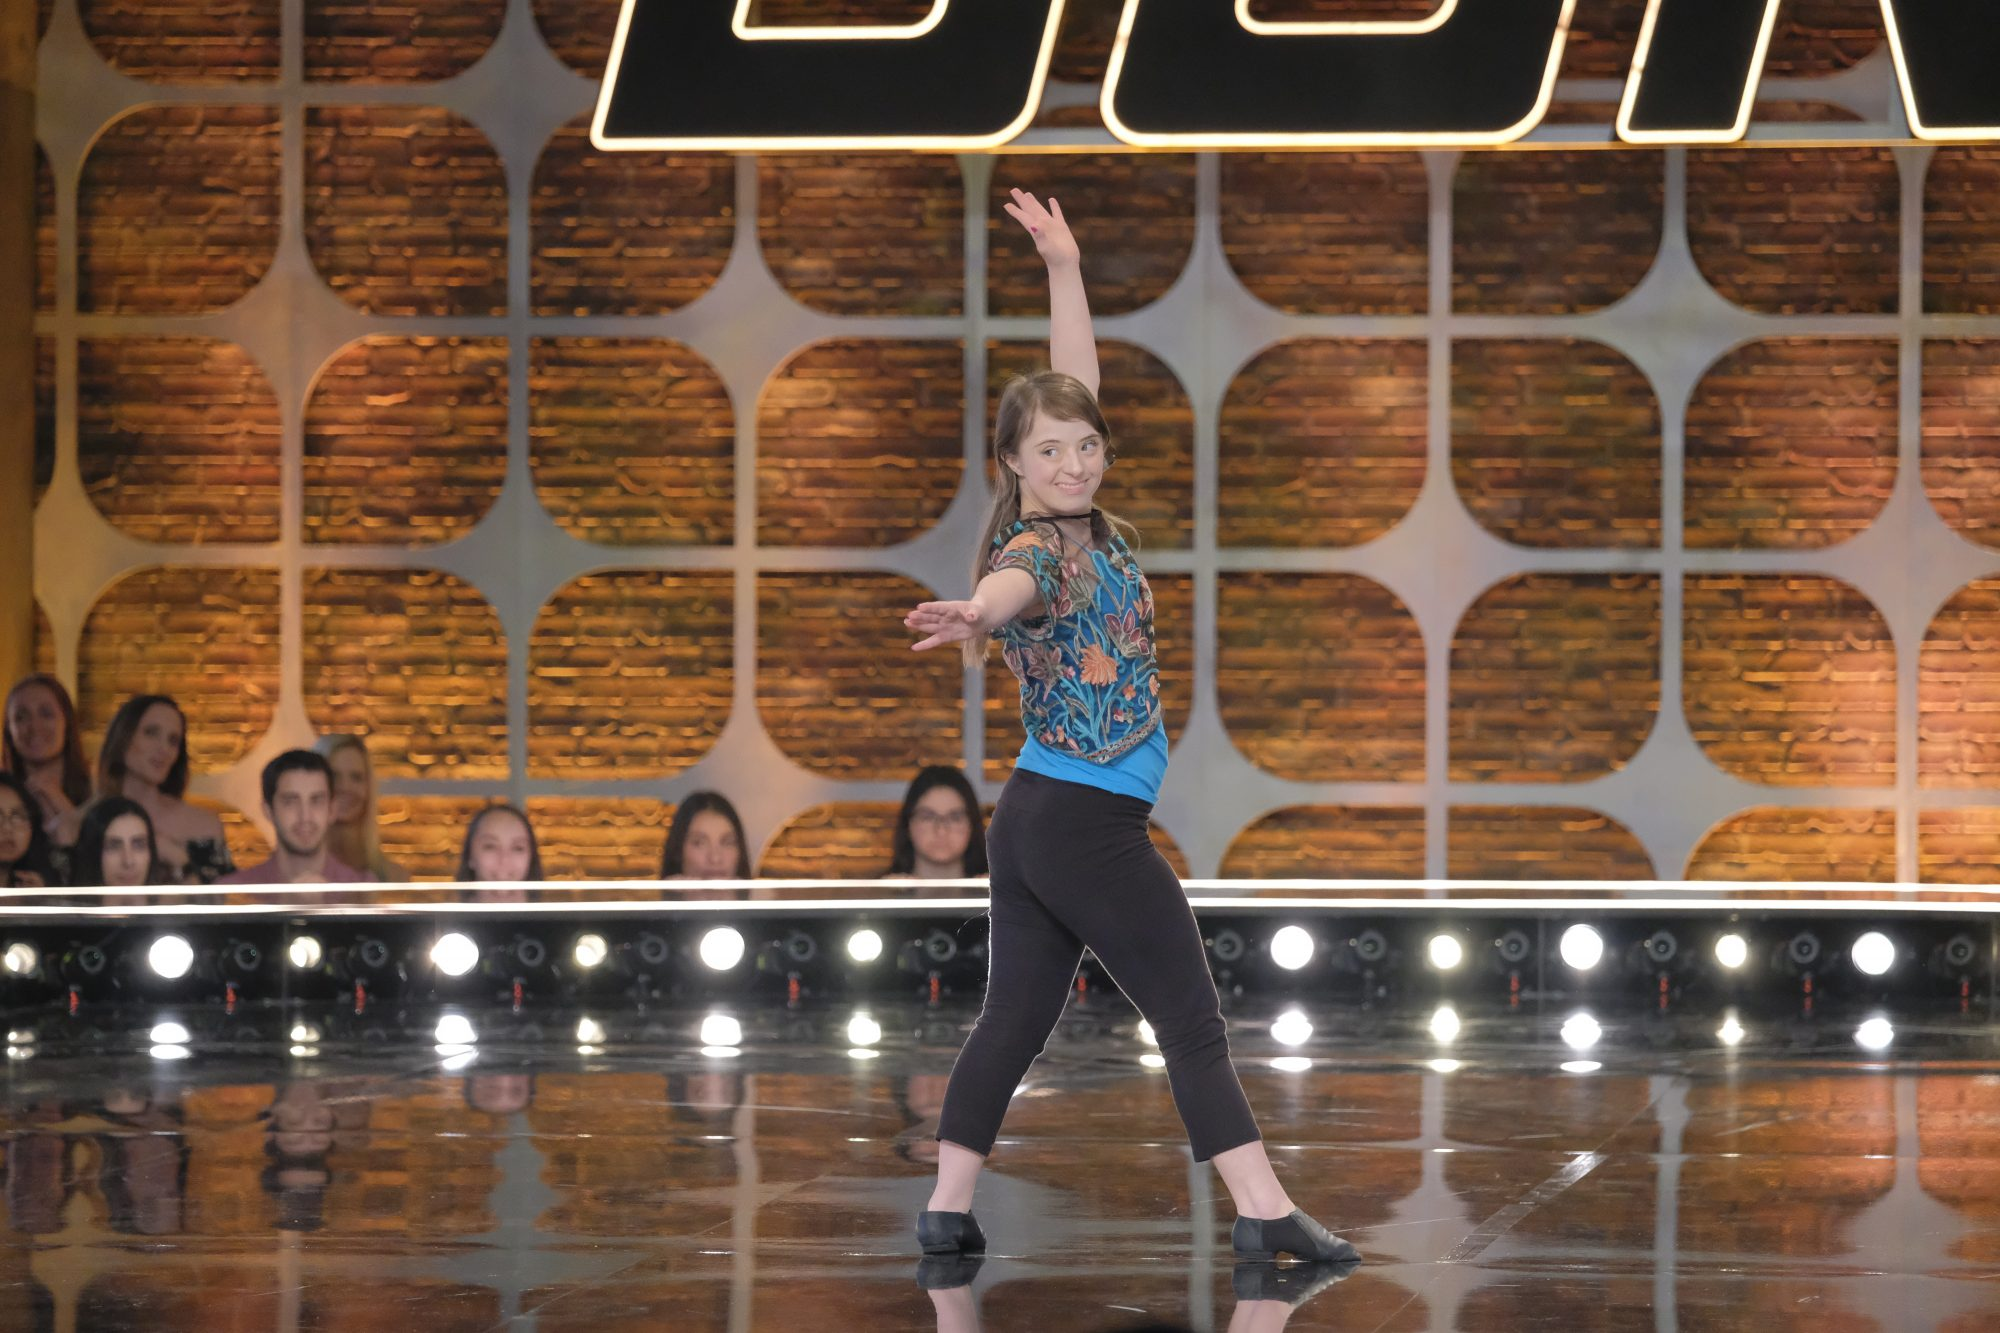 SYTYCD-S16_Auditions-032319-AR_0796_f